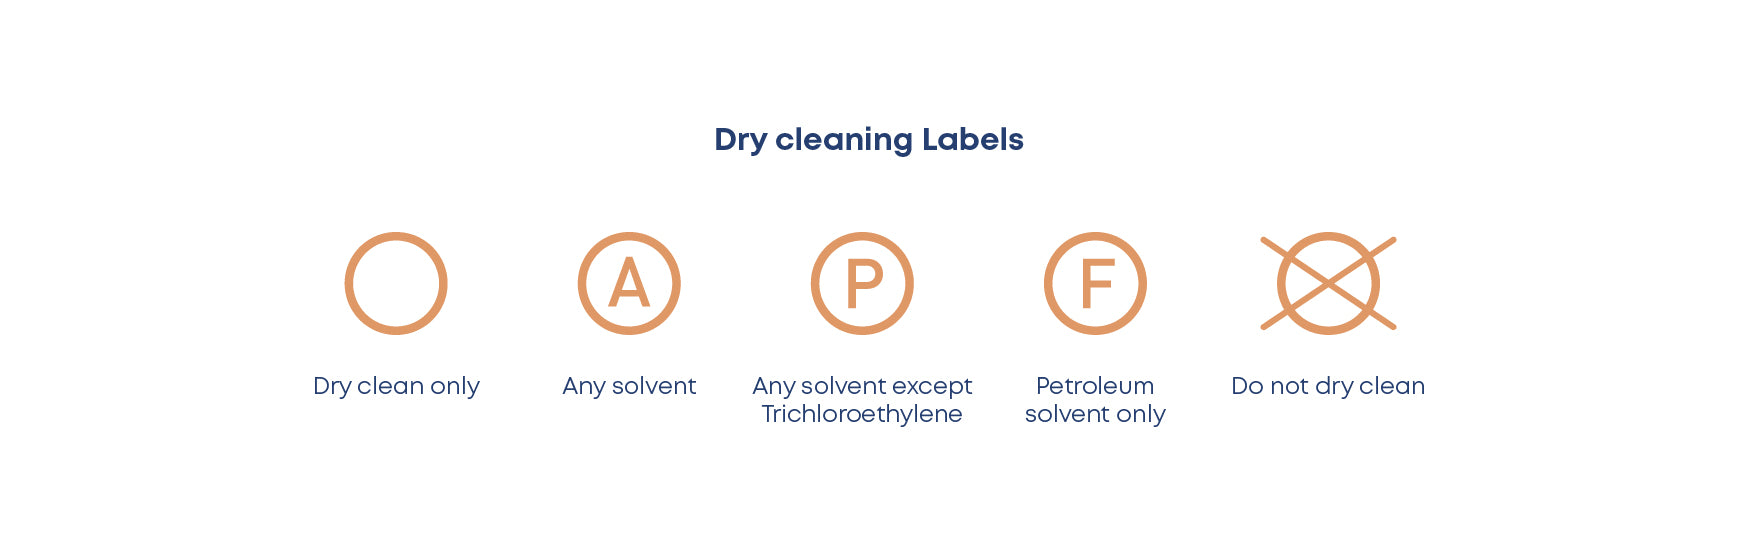 dry cleaning symbols, lycocelle